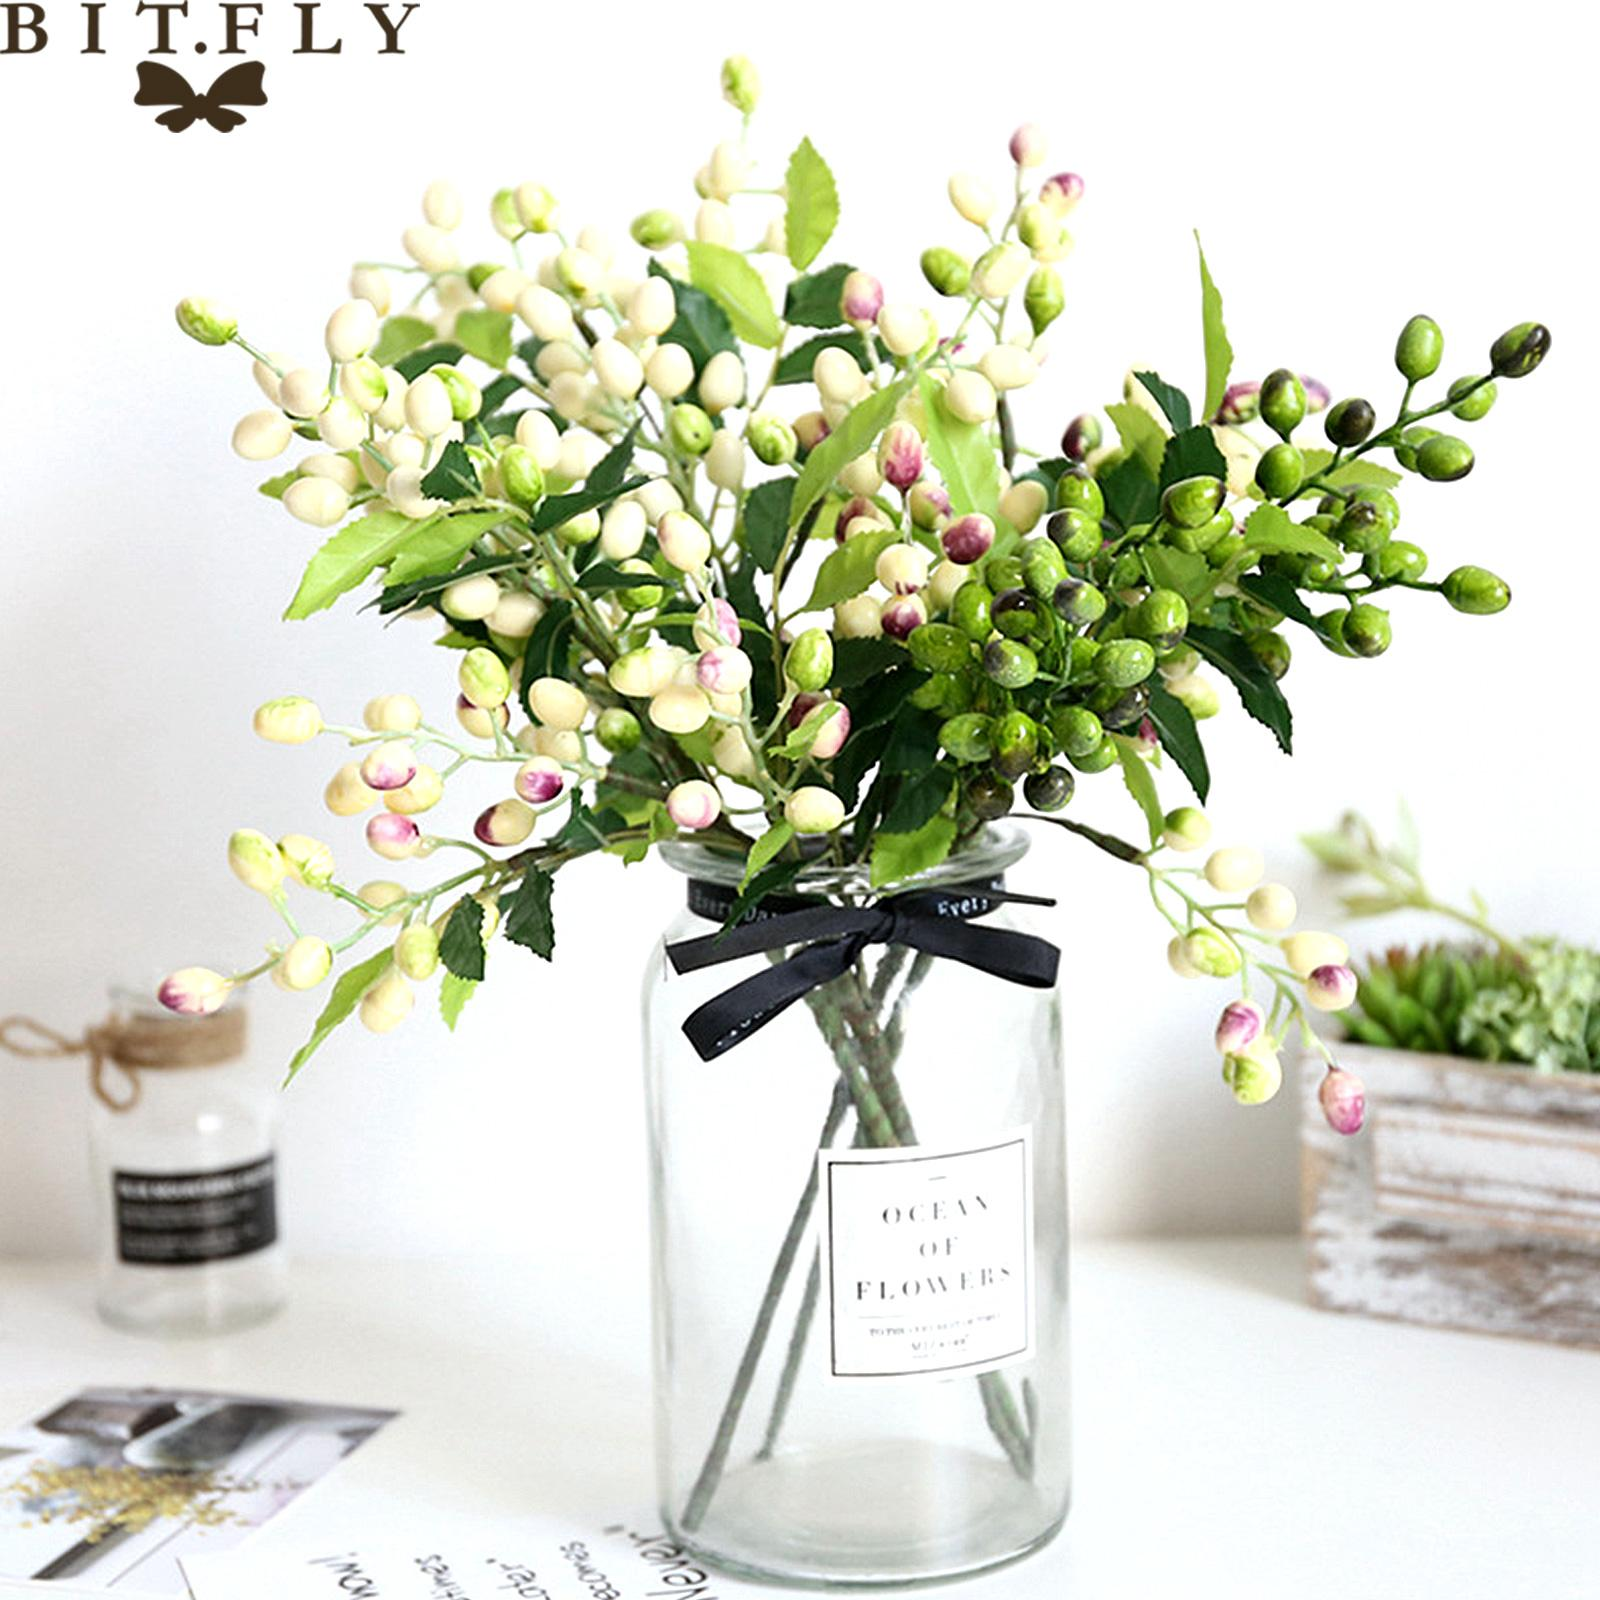 Cheap Artificial & Dried Flowers 1pcs Artificial Olive Bean Flower Tree Branches Fake Plant Bouquet For DIY Birthday Wedding Party Home Room